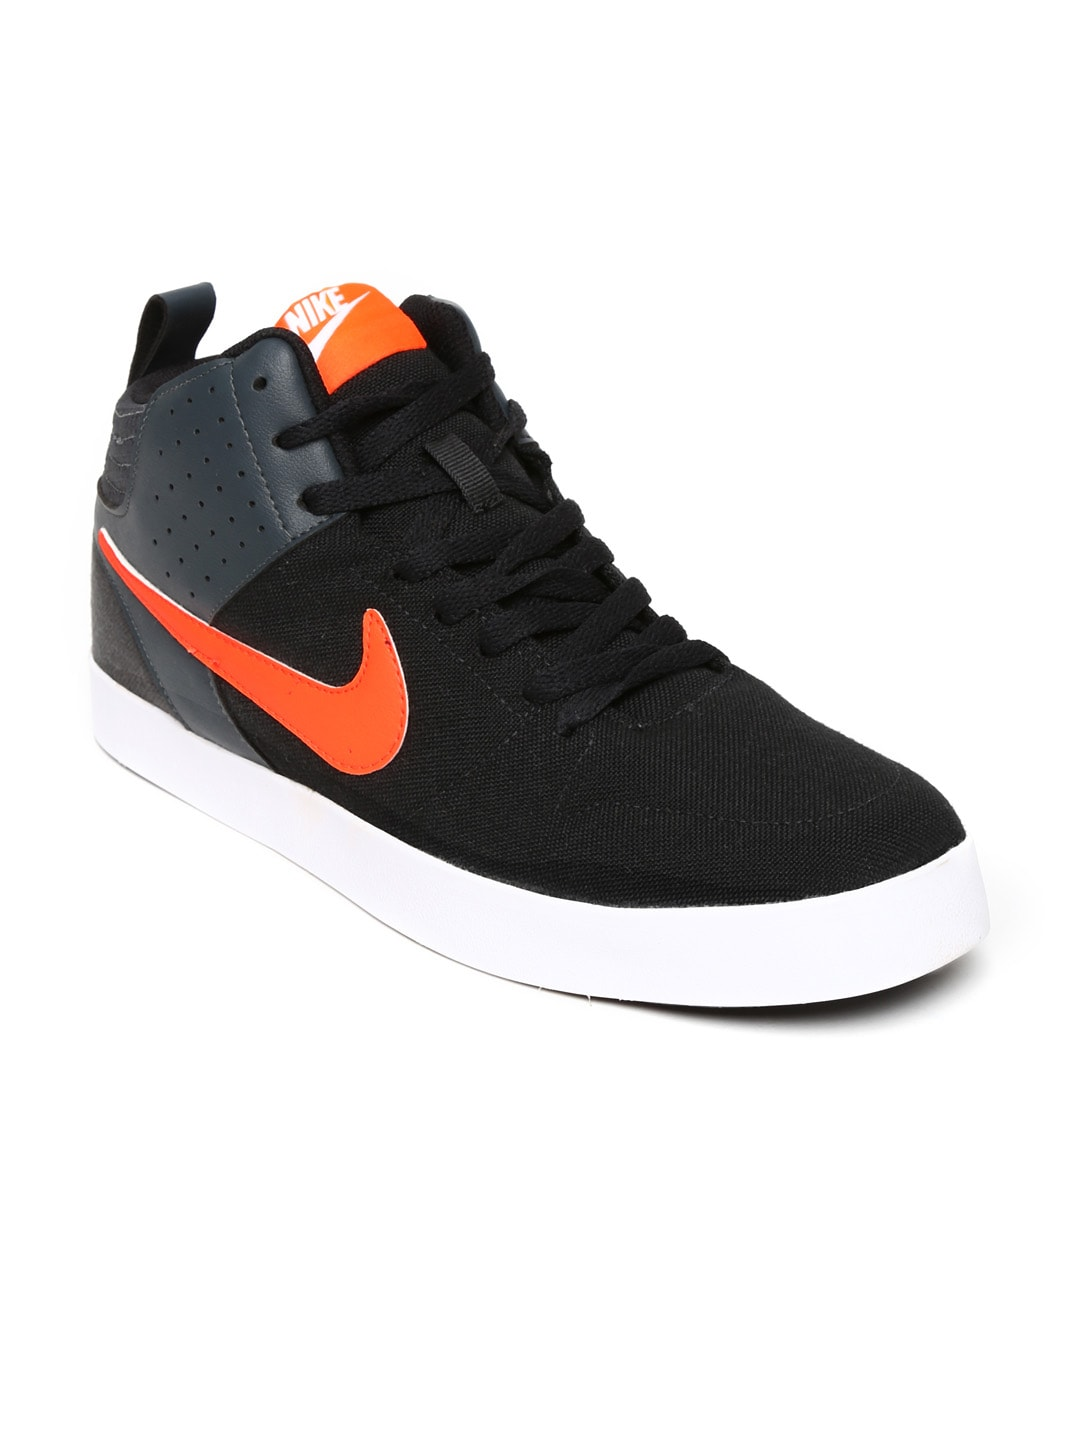 Nike Mens Casual Shoes Online India